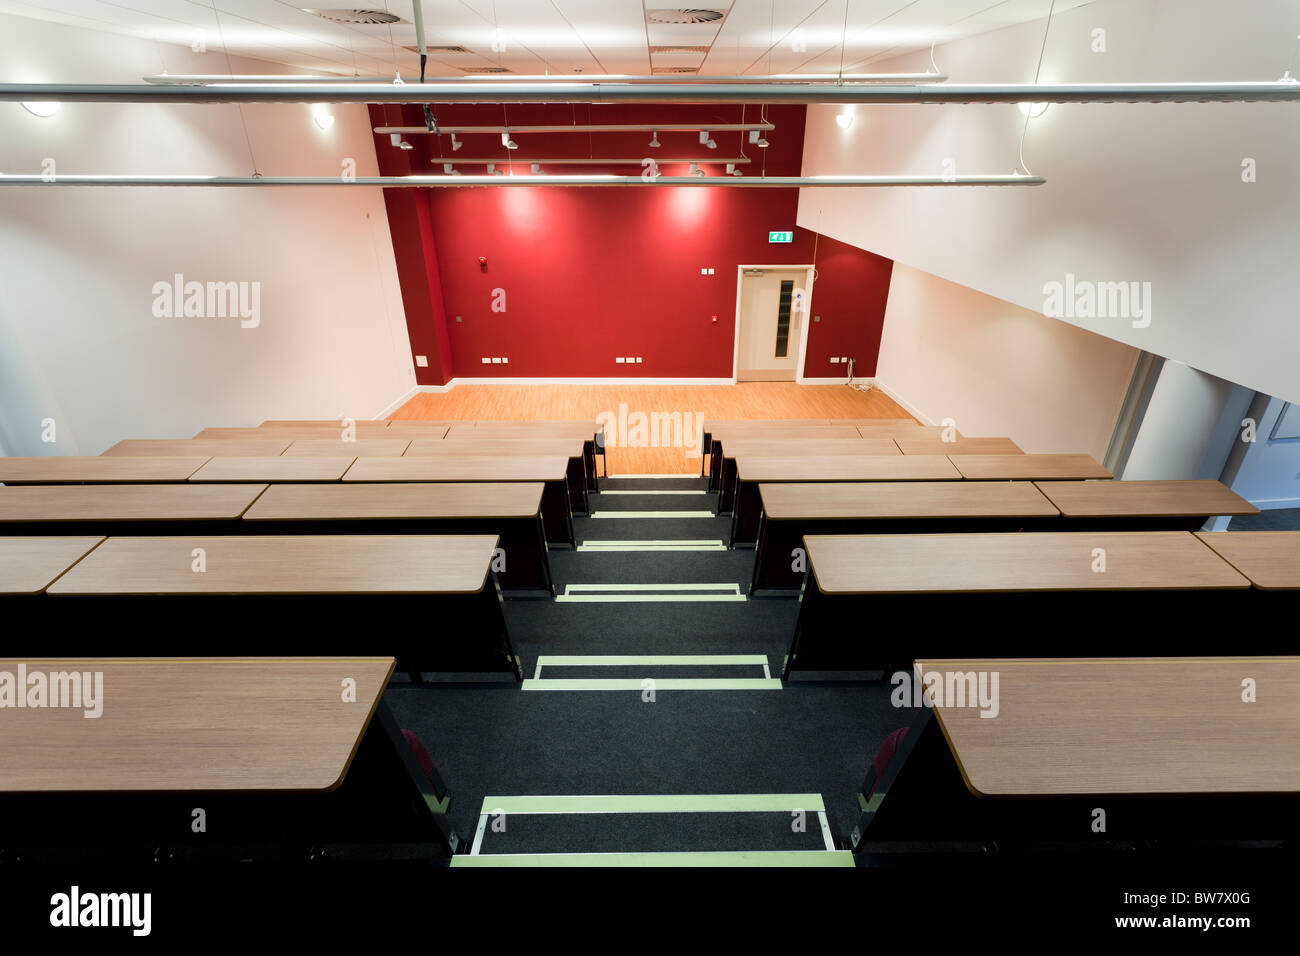 foldaway tiered seating to school hall at Portsmouth Grammar School New Science Block - Stock Image